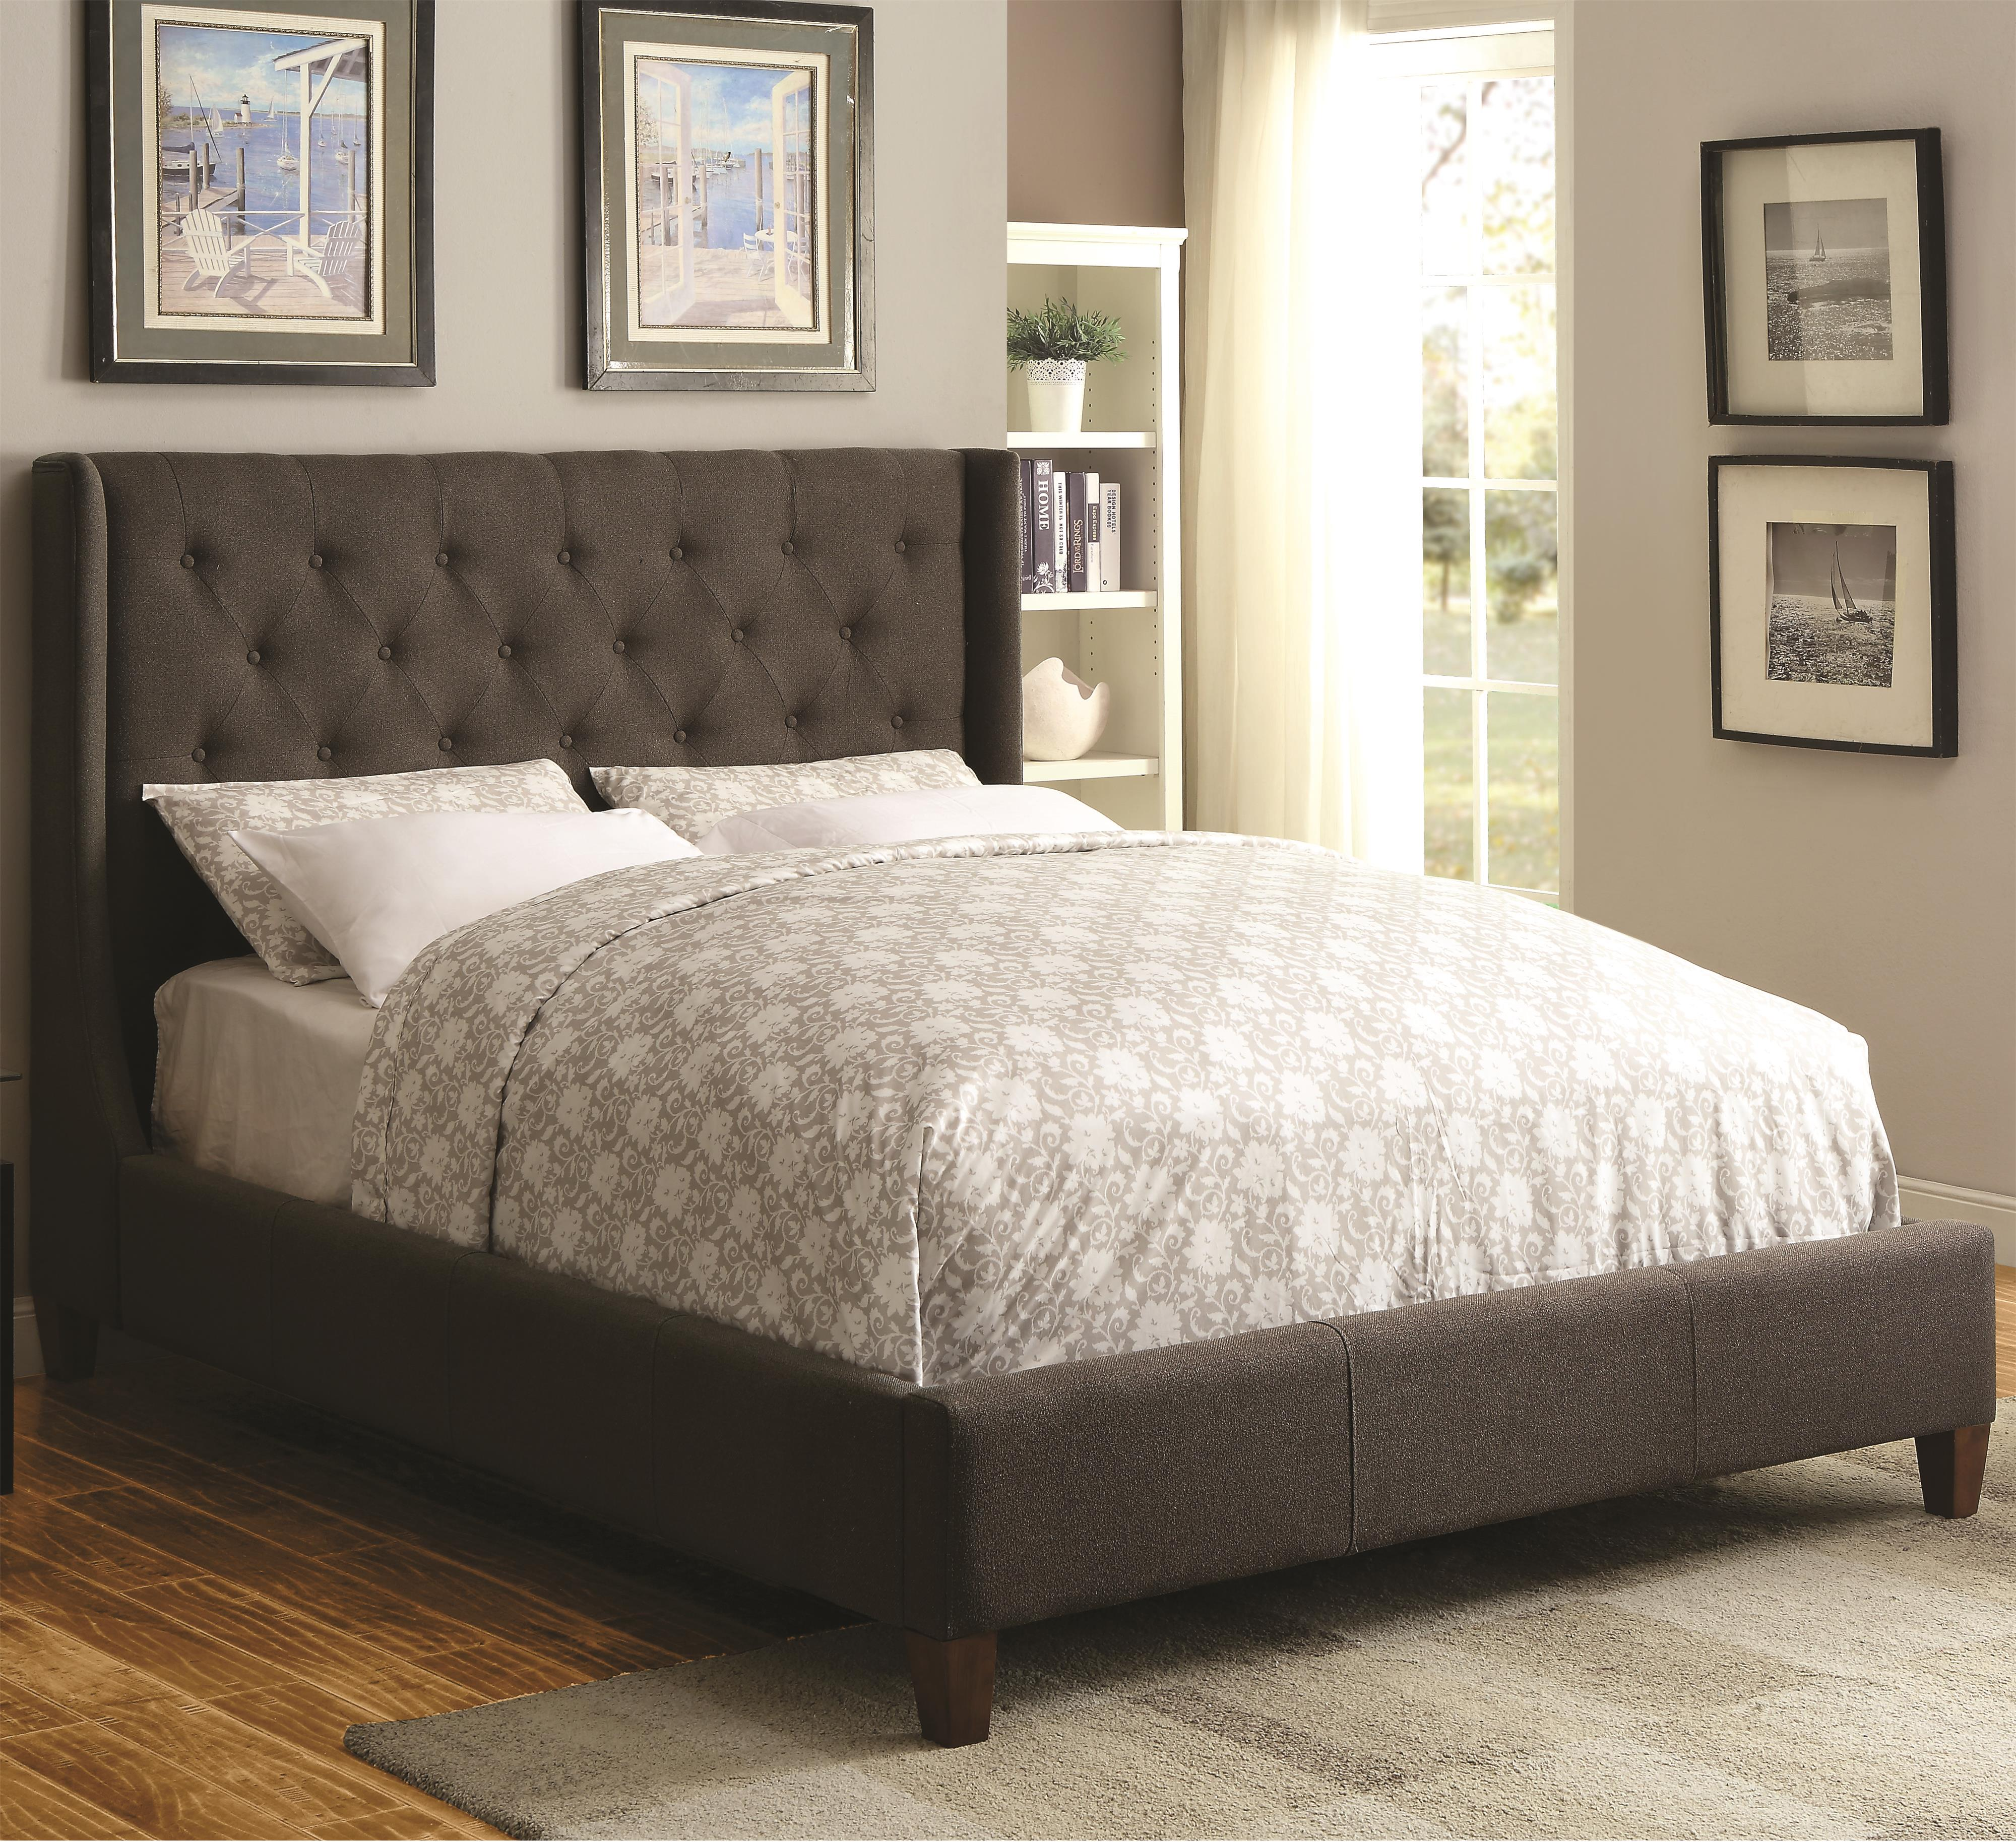 a28077c112b33 Coaster Upholstered Beds Upholstered California King Bed with Tall ...